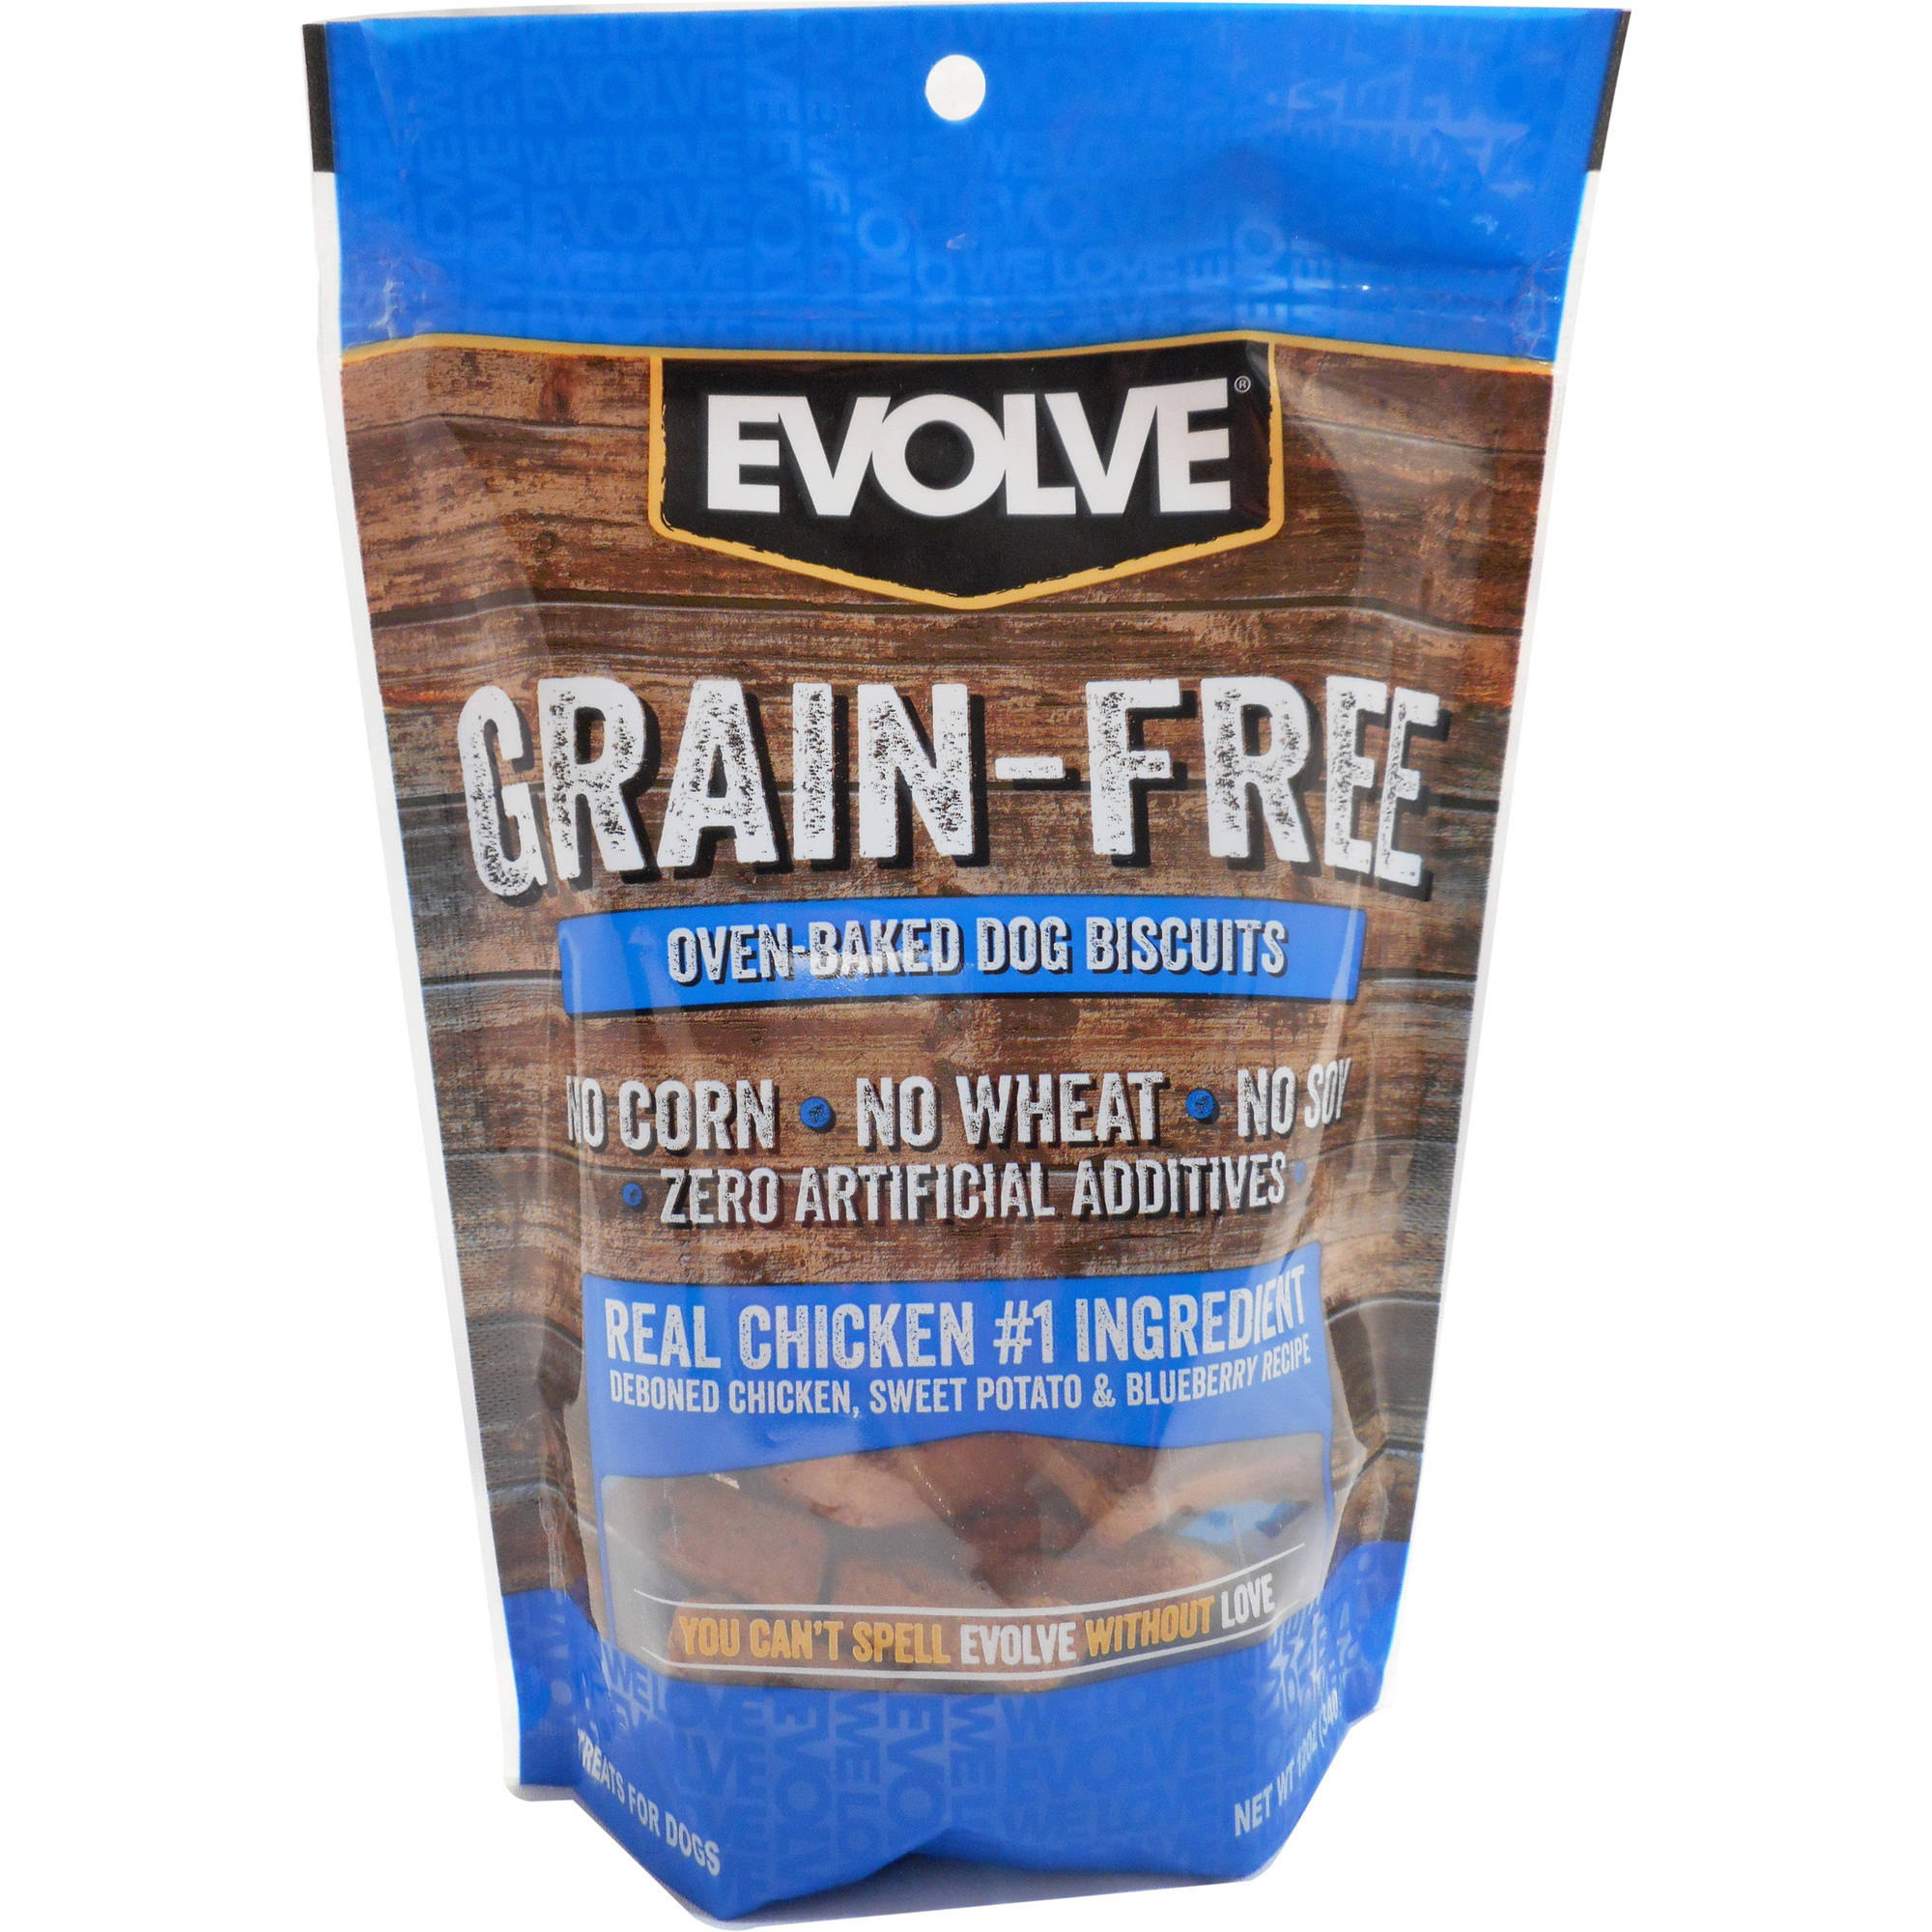 12oz Evolve Grain Free Chicken, Sweet Potato, and Blueberry Flavored Dog Biscuit